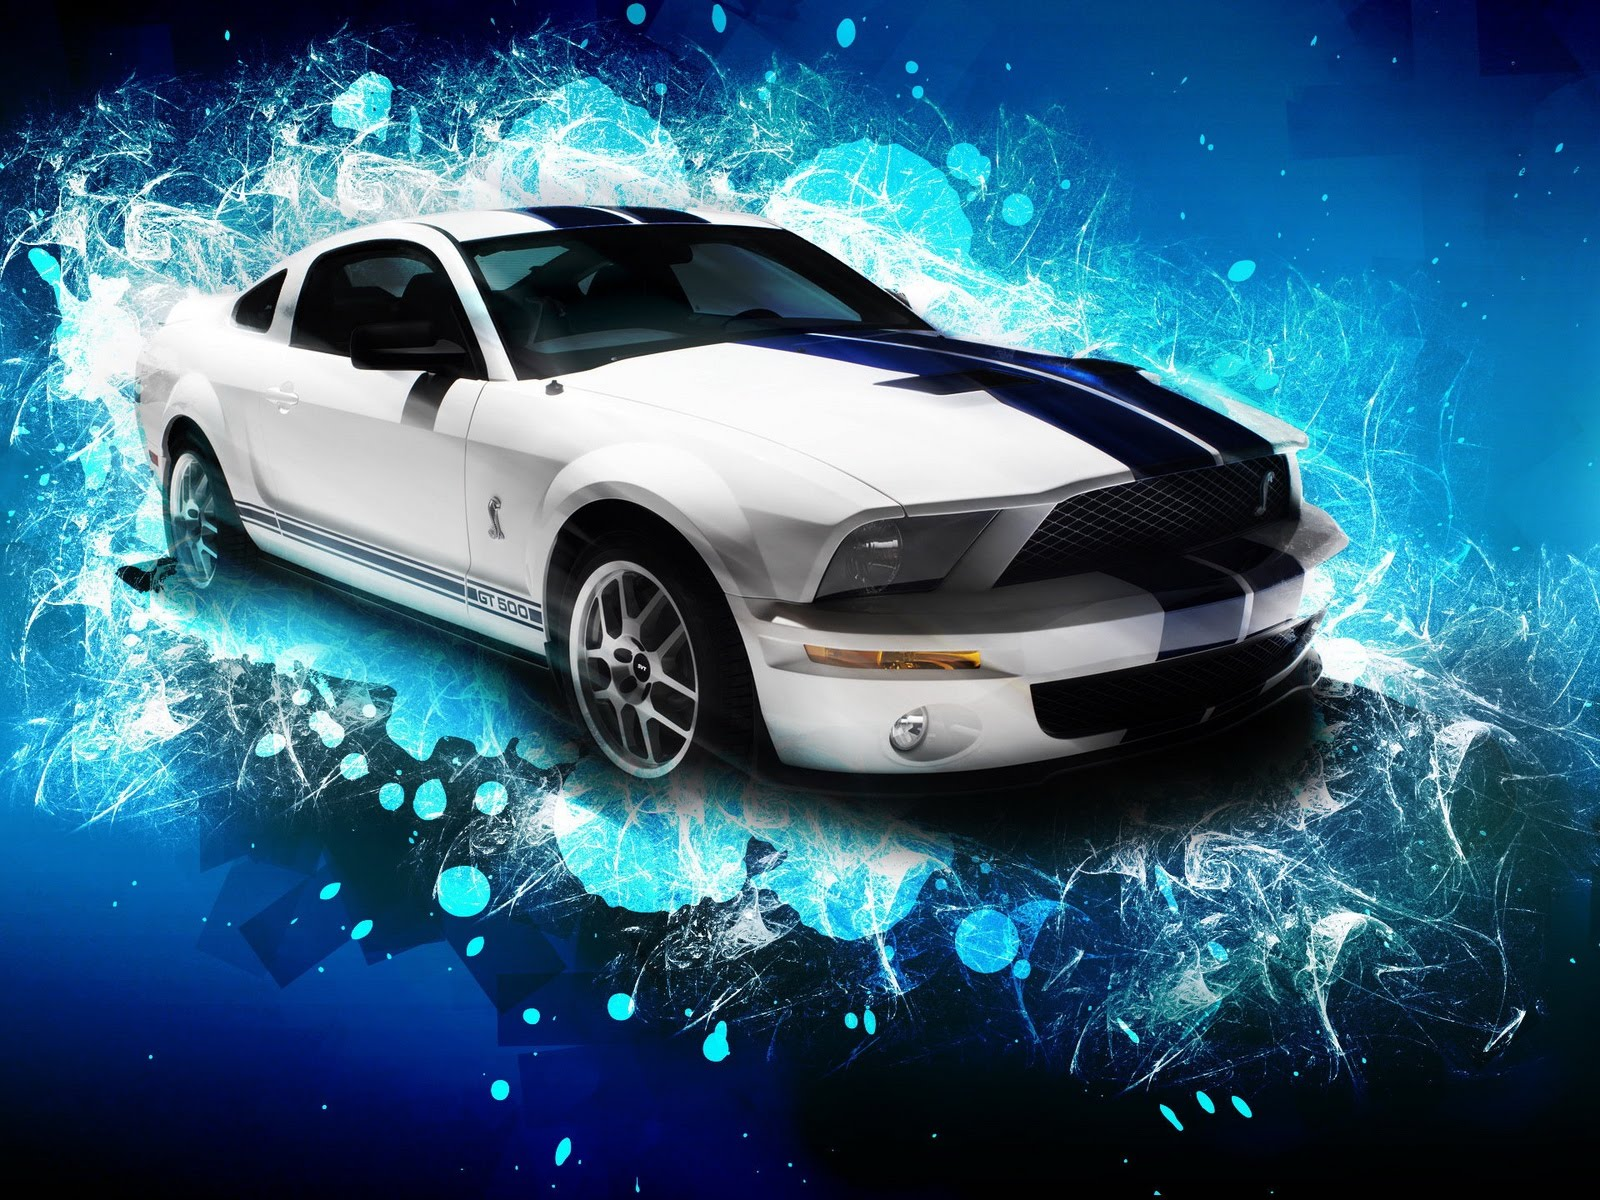 10 Free Cars Backgrounds Wallpapers HD Download